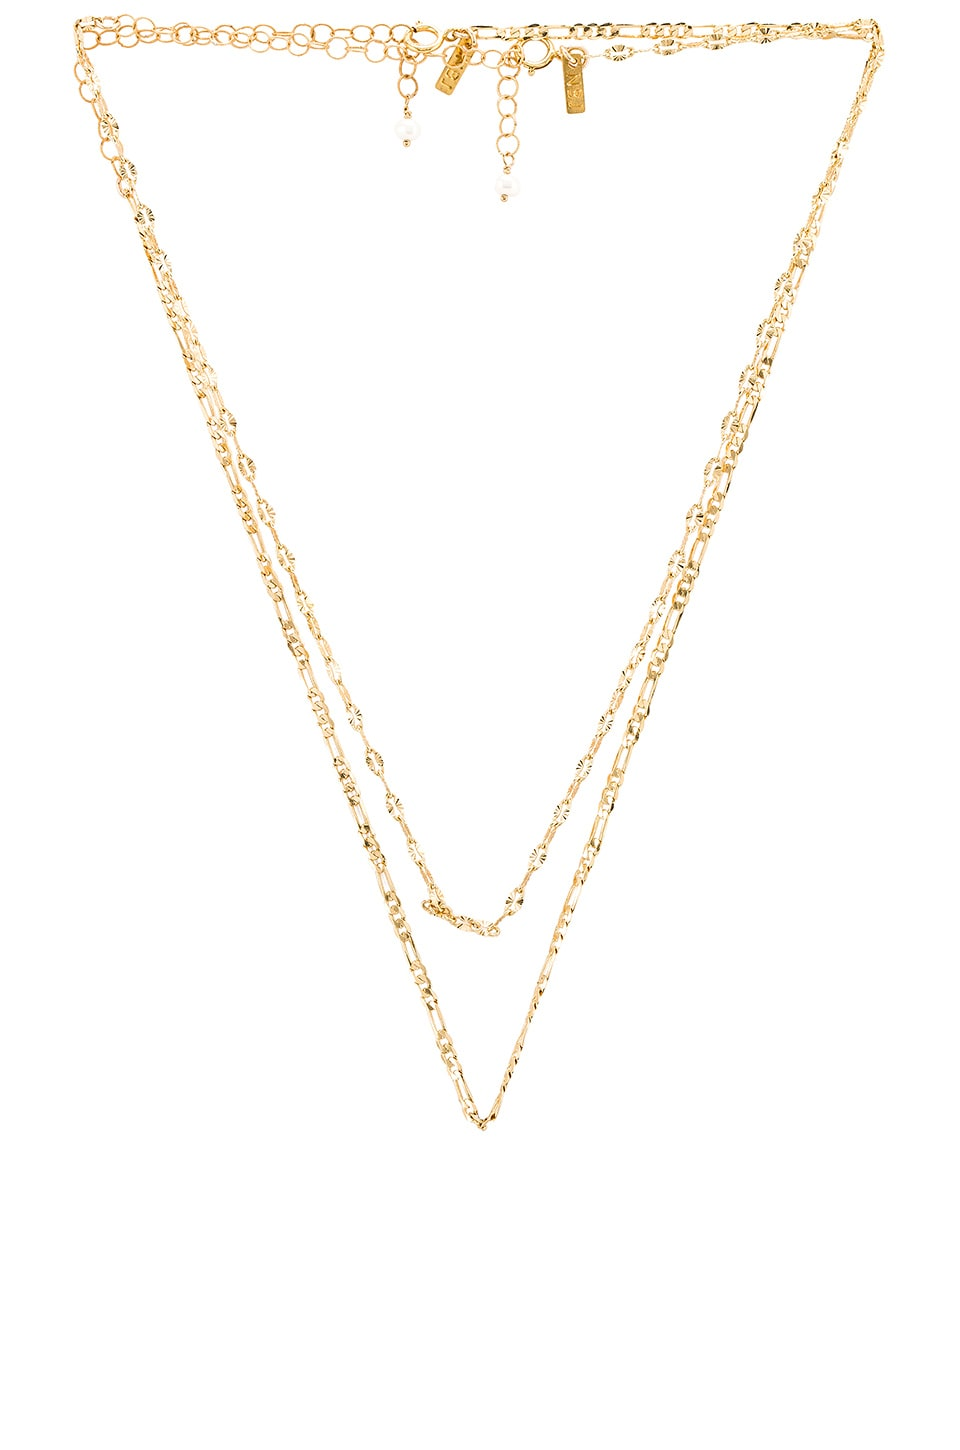 Natalie B Jewelry X REVOLVE Alexe Duo Necklace Set in Gold